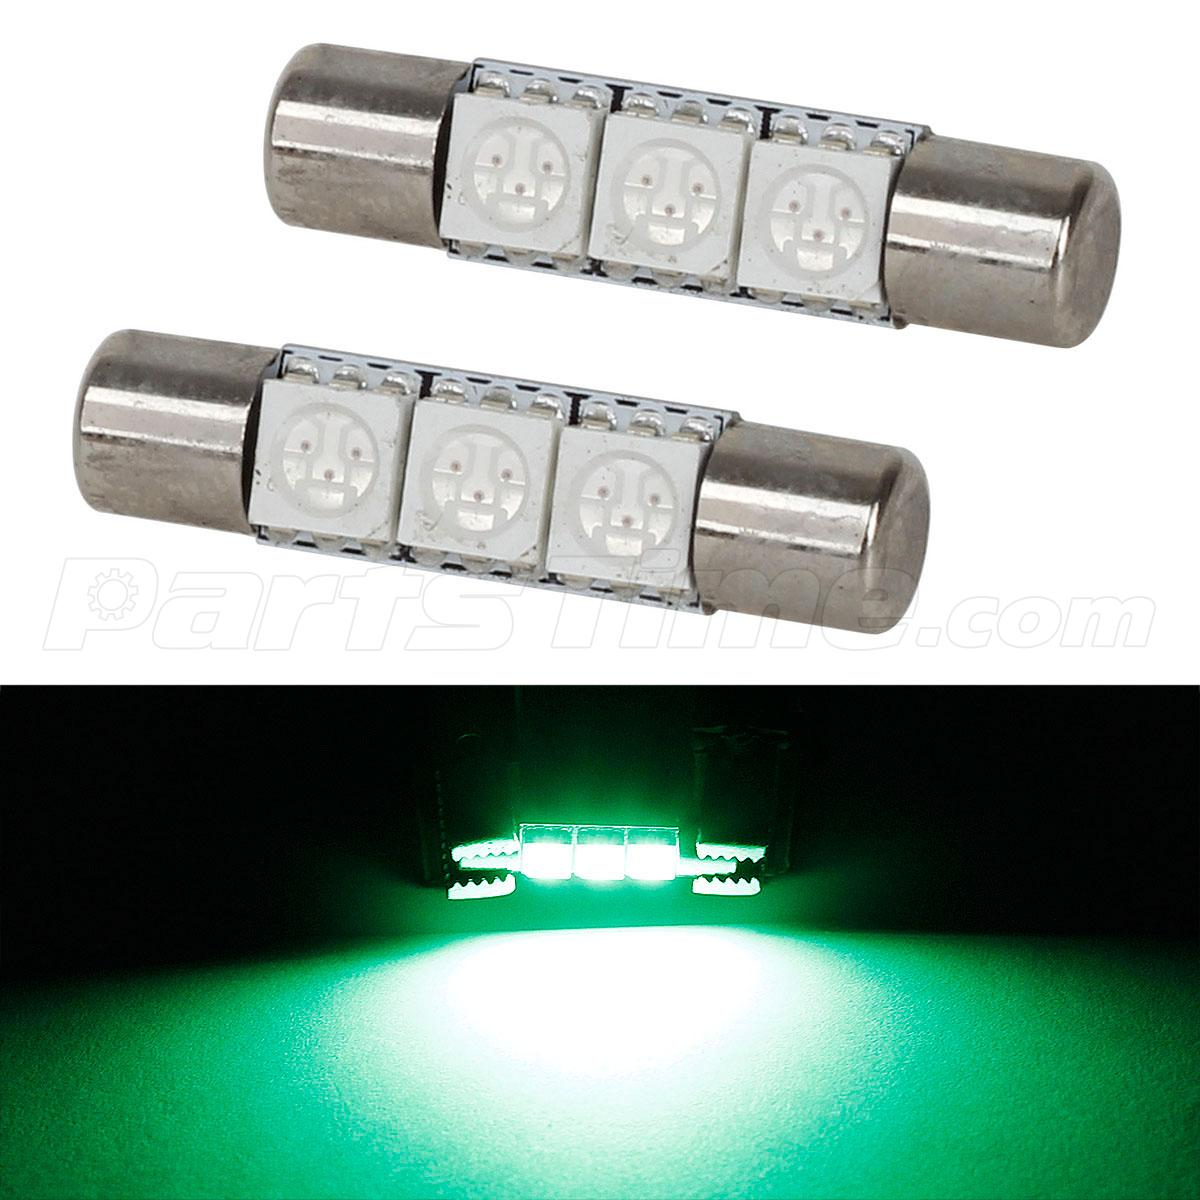 Vanity Light For Car Visor : 2pcs Super Green 3SMD LED Bulb for Car Vanity Mirror Lights Sun Visor Lamp 12V eBay